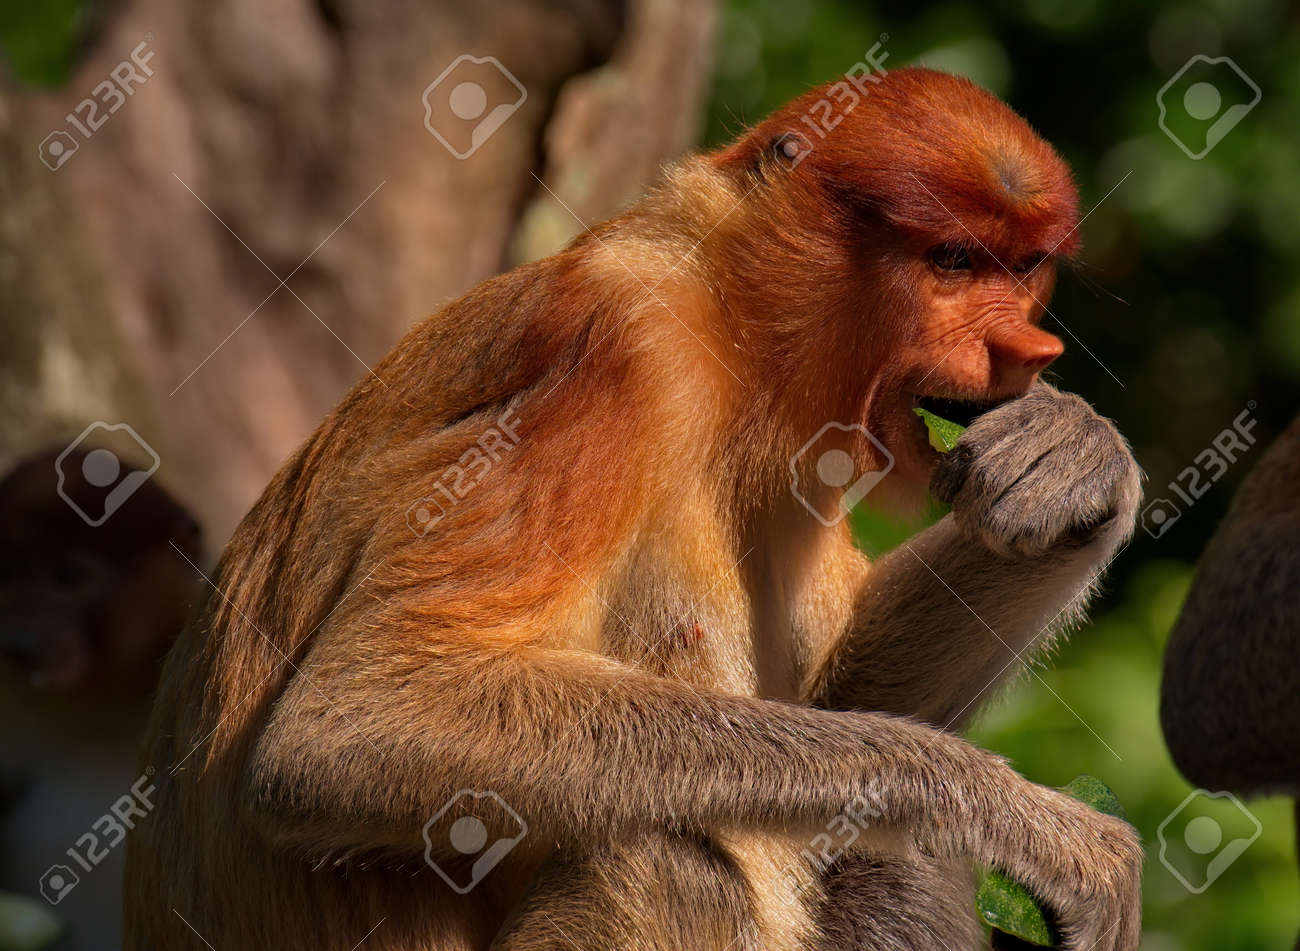 Malaysia The long-nosed monkey or kahau - a species of primates from the subfamily of thin-bodied monkeys in the family of monkeys. Distributed exclusively on the island of Borneo - 149988956